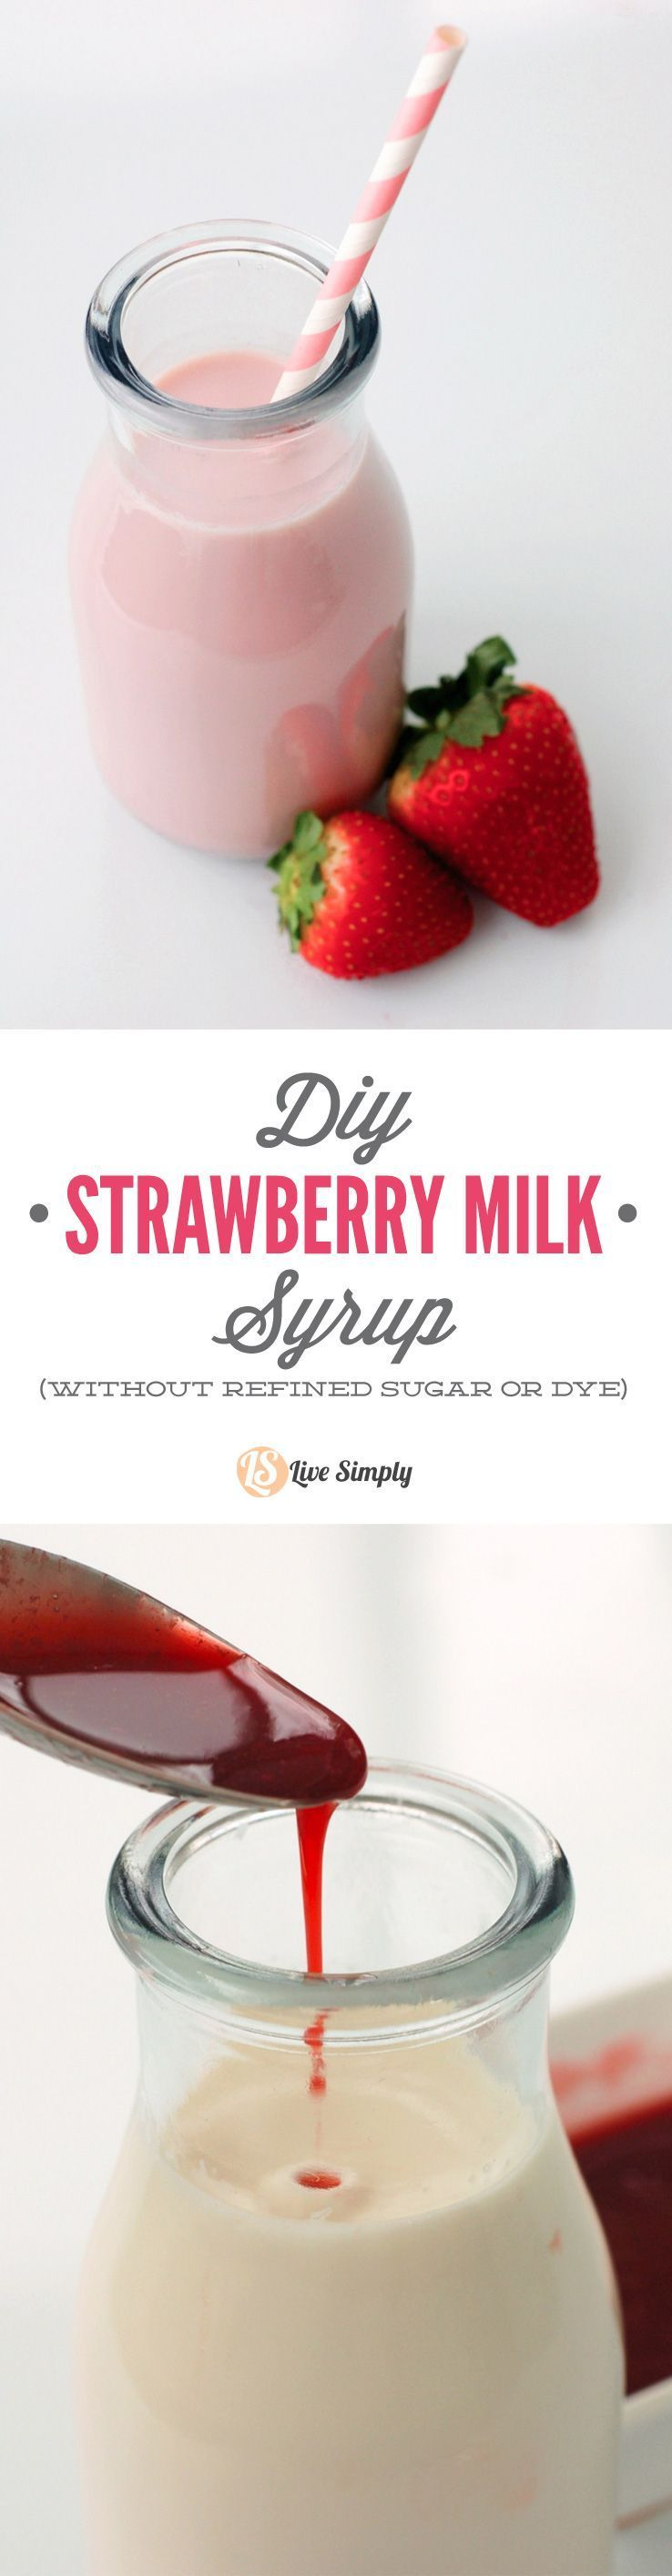 Strawberry Syrup For Strawberry Milk (Dye and Refined Sugar Free!) The BEST COPYCAT real food strawberry milk syrup recipe! Just 3 ingredients and made without any refined sugar or artificial dye! A real fruit strawberry milk syrup you can feel good about serving your kids! Strawberry Syrup For Strawberry Milk (Dye and Refined Sugar Free!) The BEST COPYCAT real